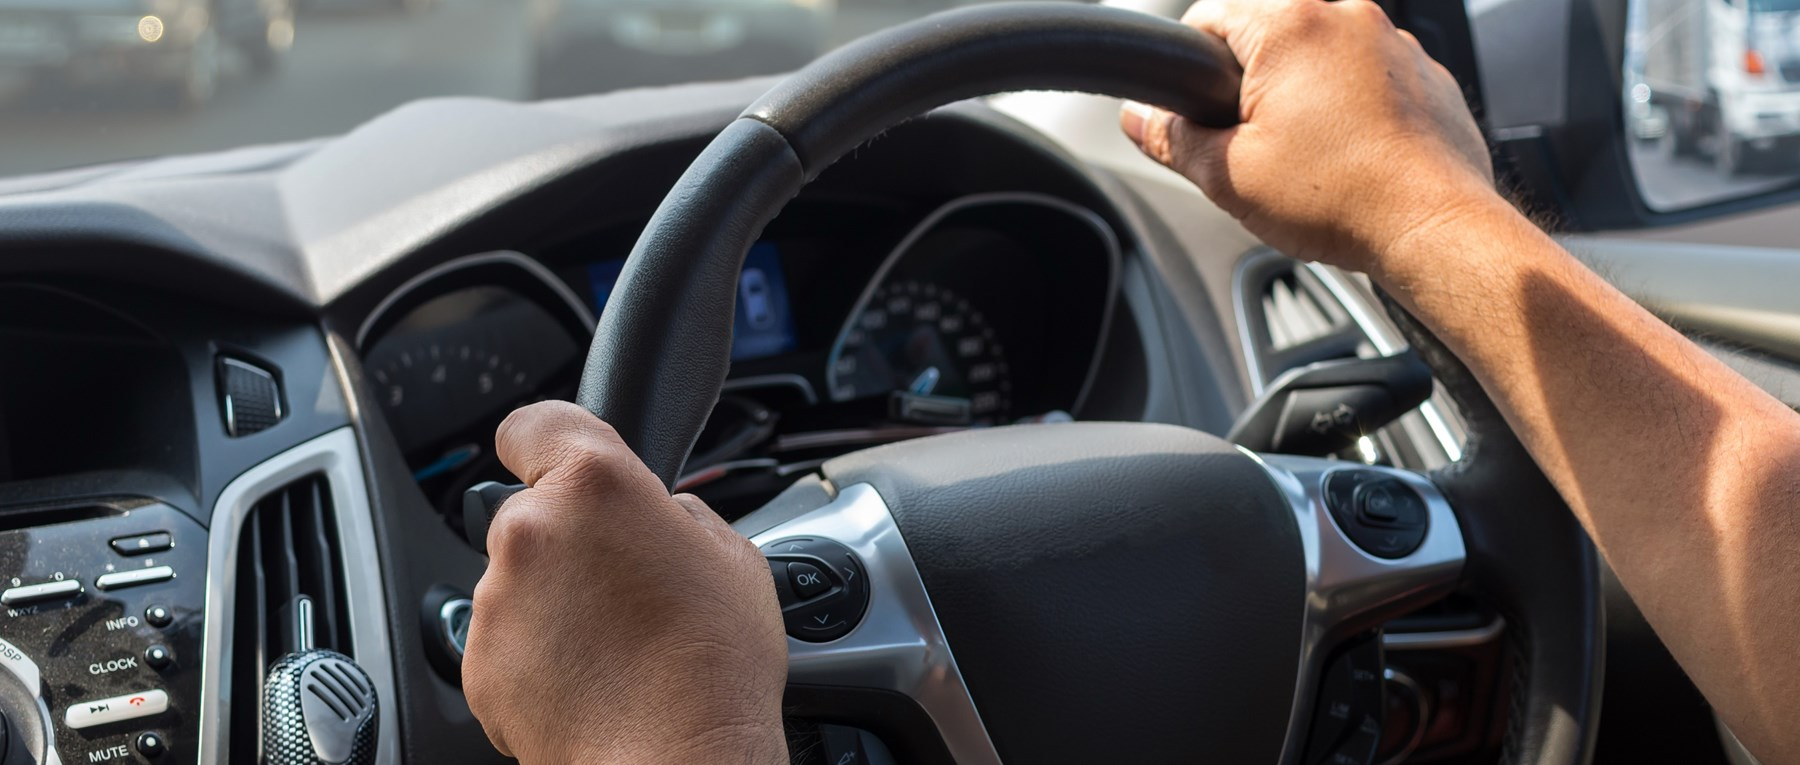 Man's arms on a steering wheel